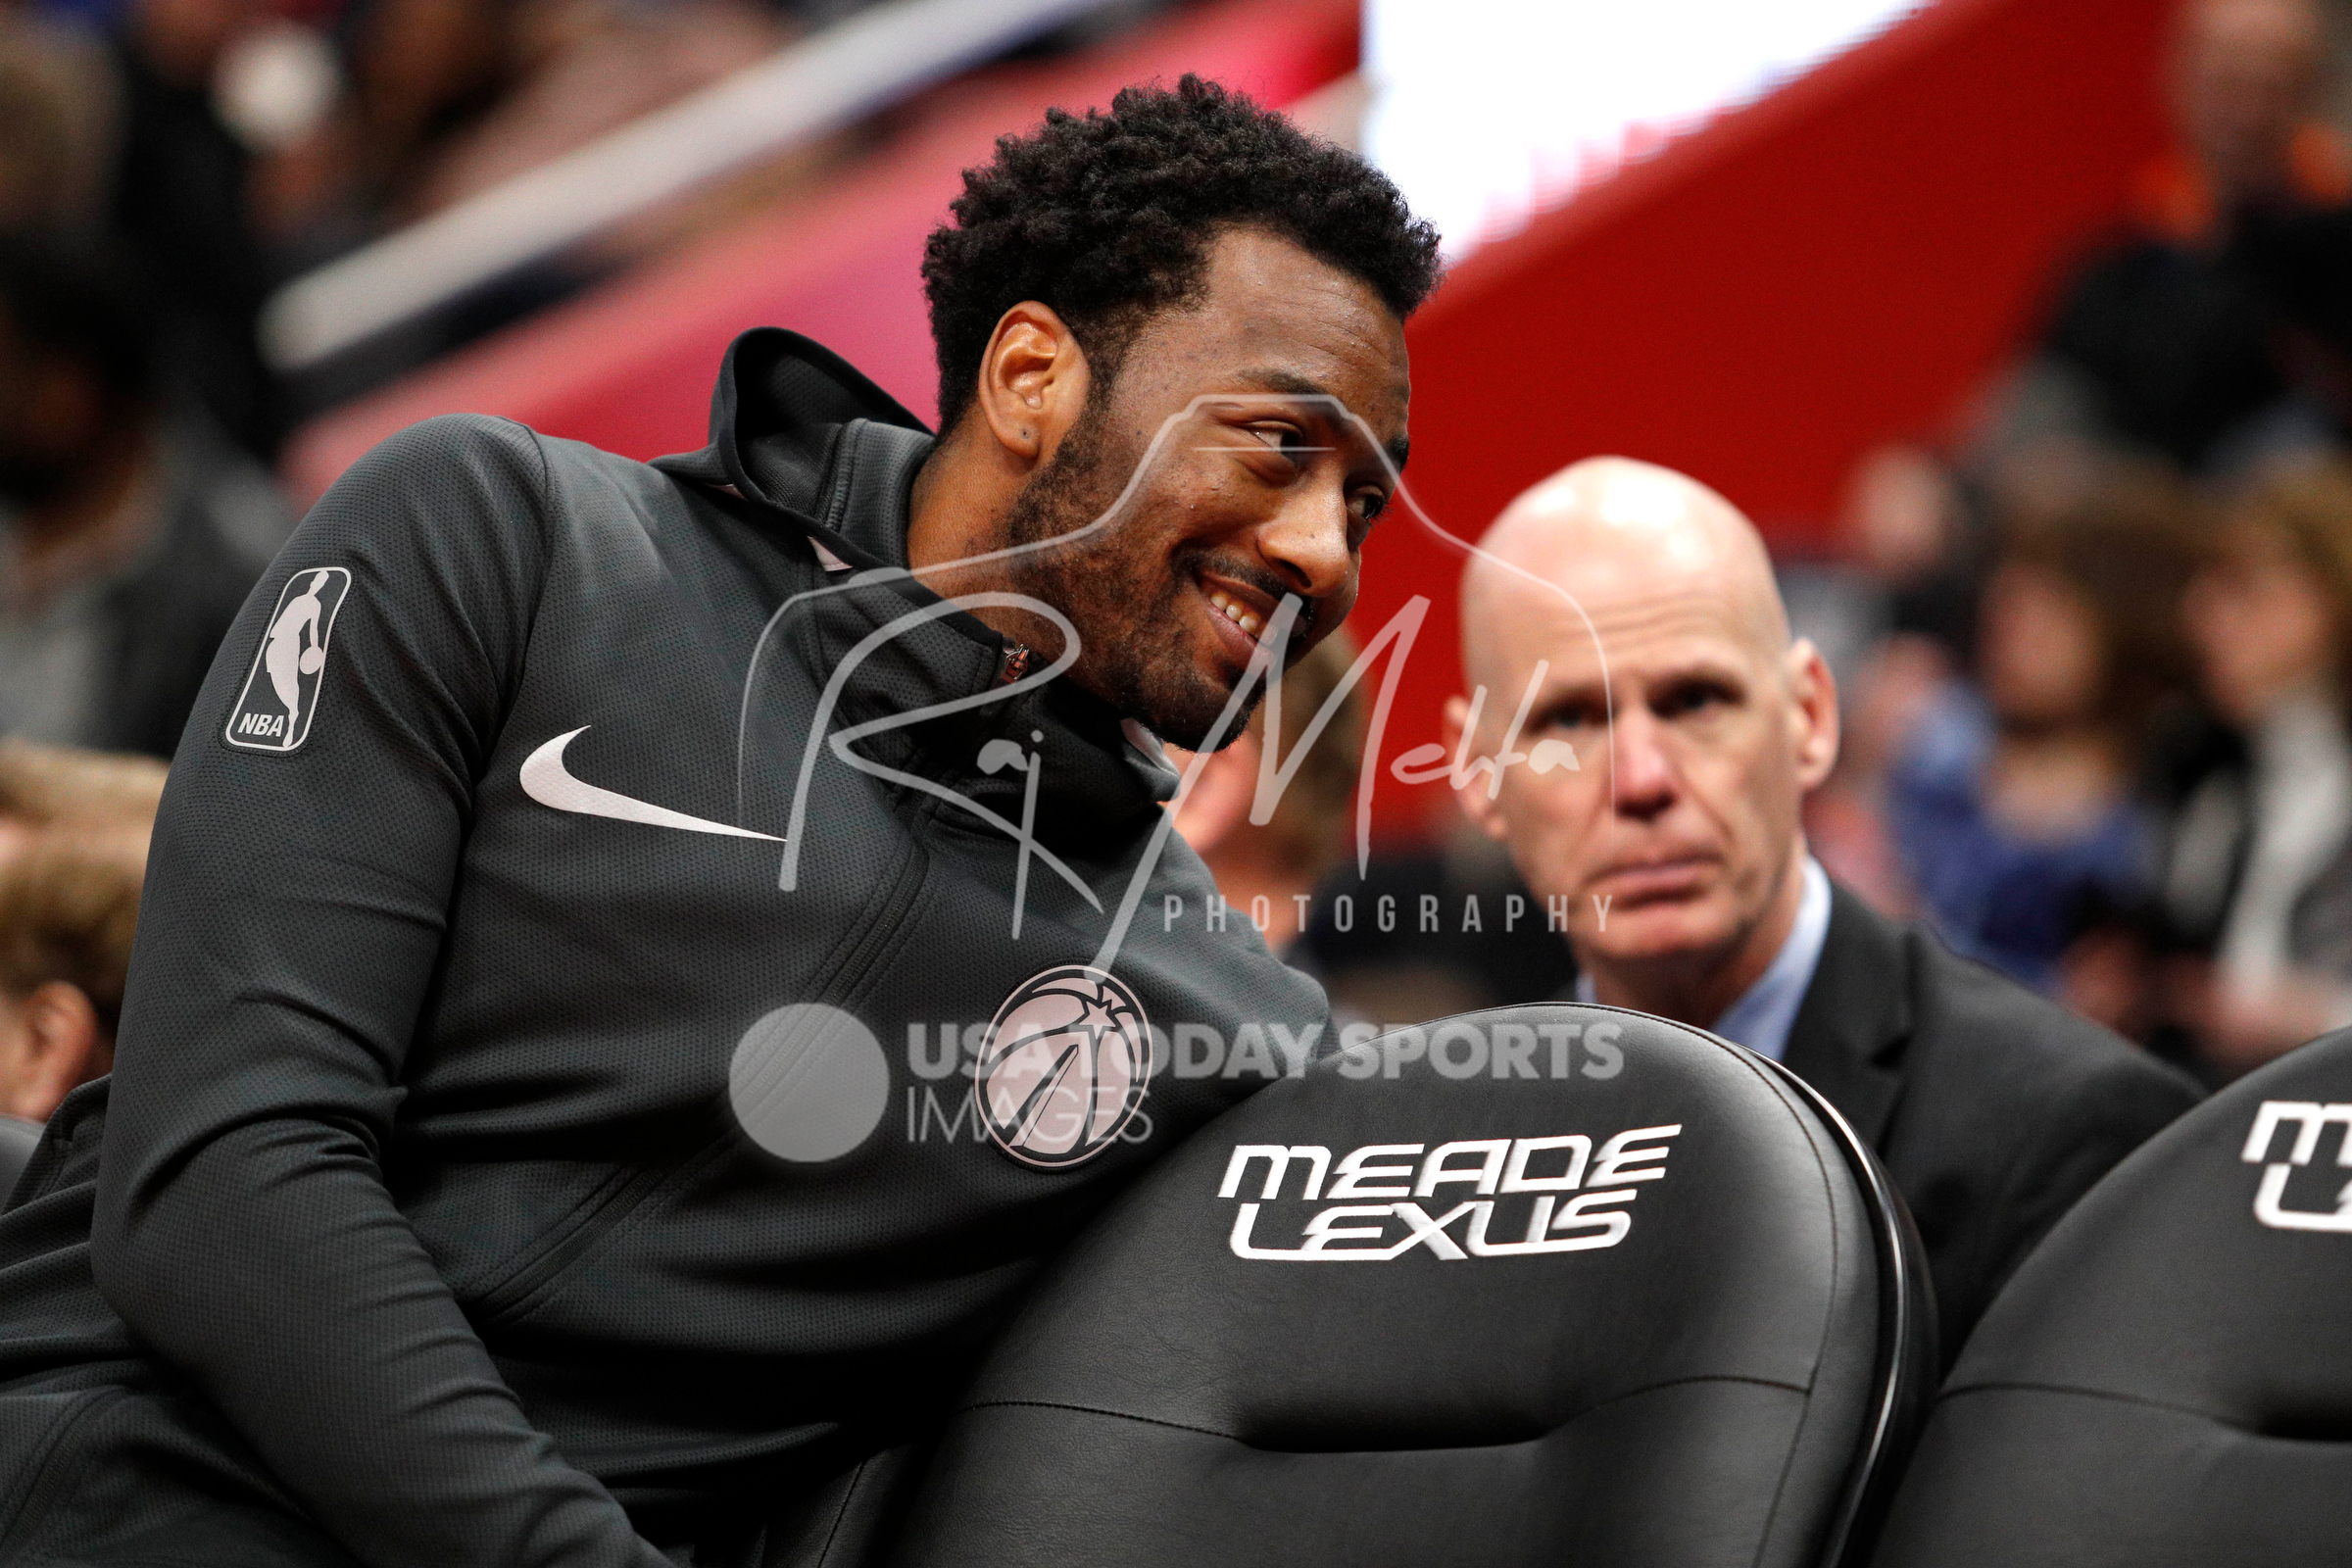 Mar 29, 2018; Detroit, MI, USA; Washington Wizards guard John Wall (2) sits on the bench and smiles during the second quarter against the Detroit Pistons at Little Caesars Arena. Mandatory Credit: Raj Mehta-USA TODAY Sports